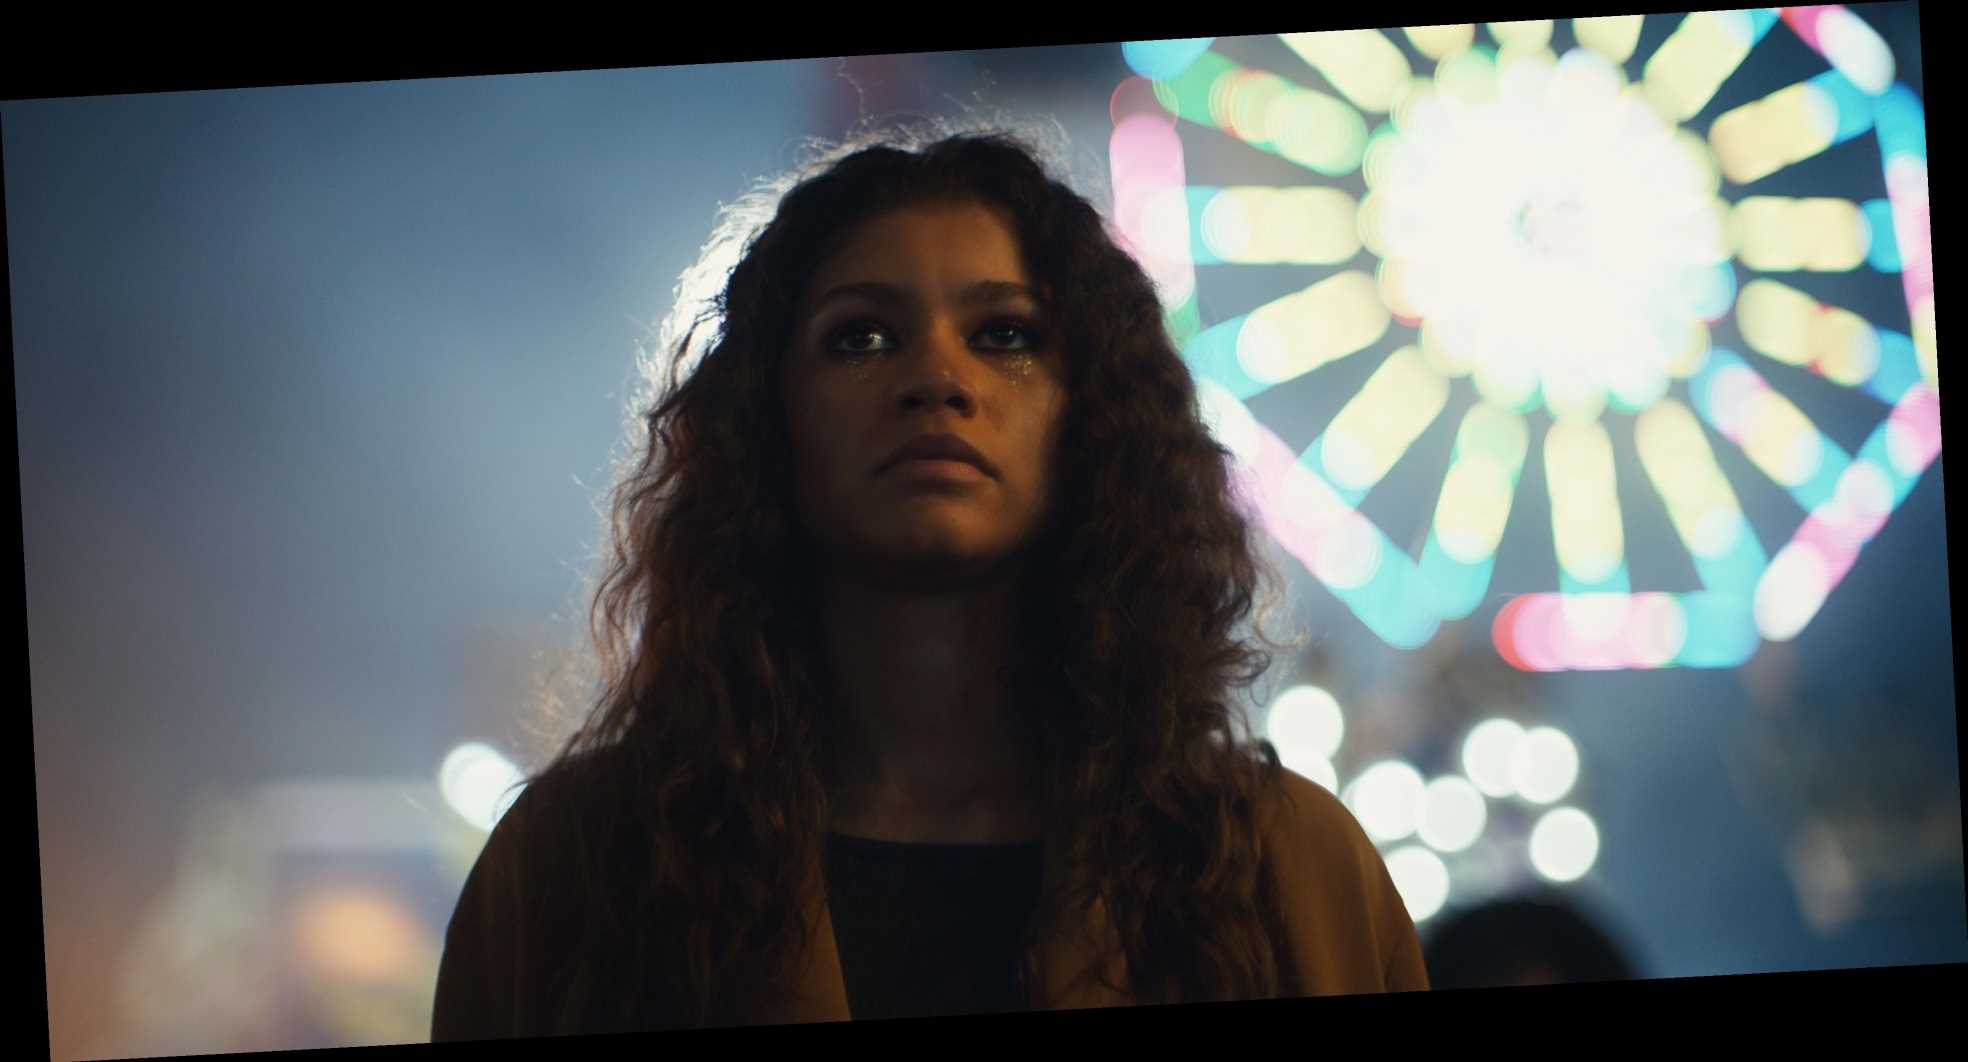 Yep, Season 2 of 'Euphoria' Is Officially Happening and the Cast Has Already Started Working on It